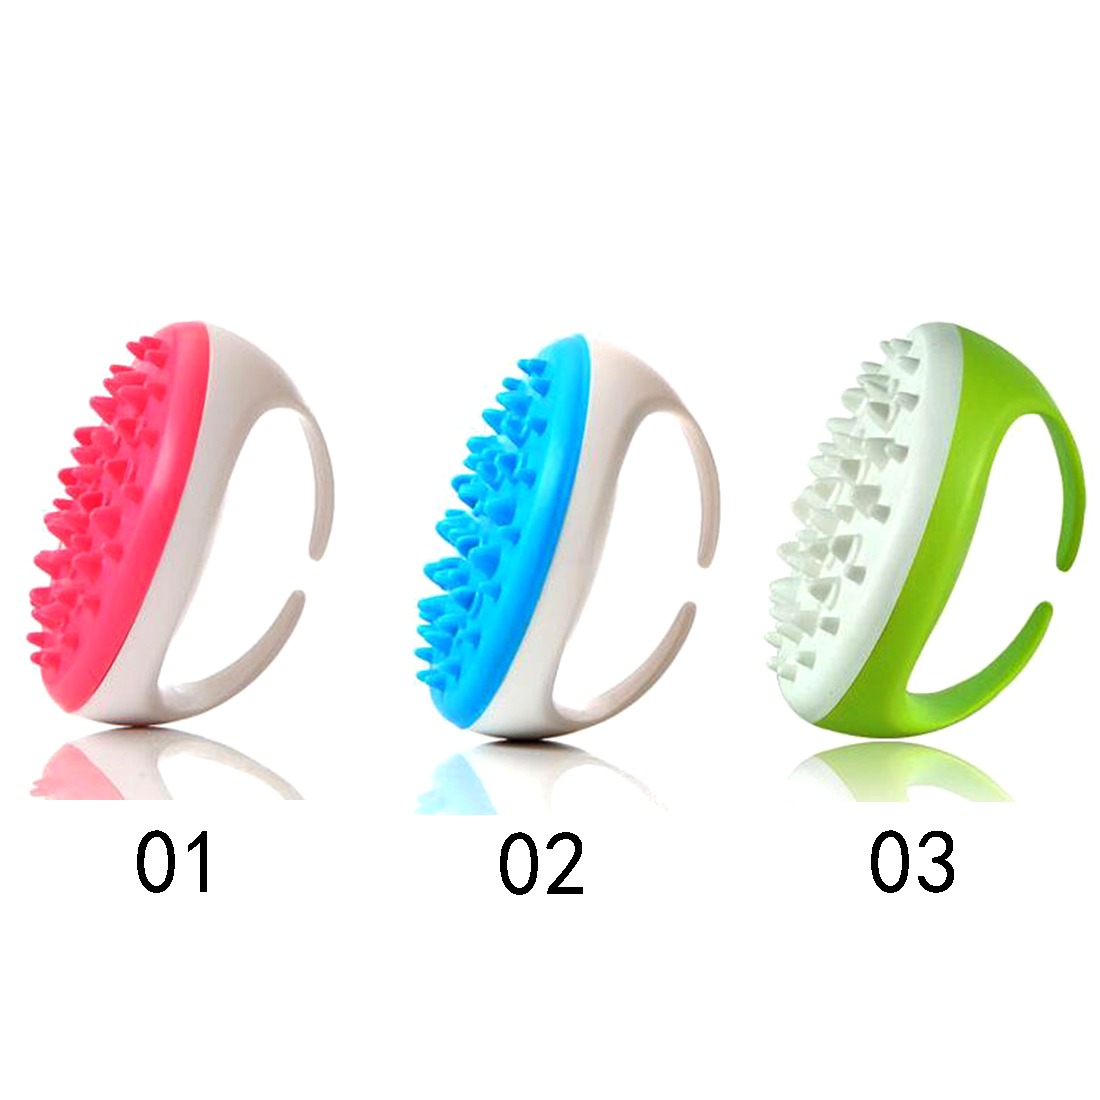 New Arrival Soft Handheld Bath Brush Shower Anti Cellulite Full Body Massage Glove Slimming Relaxing Scrub Massager Bath Spa